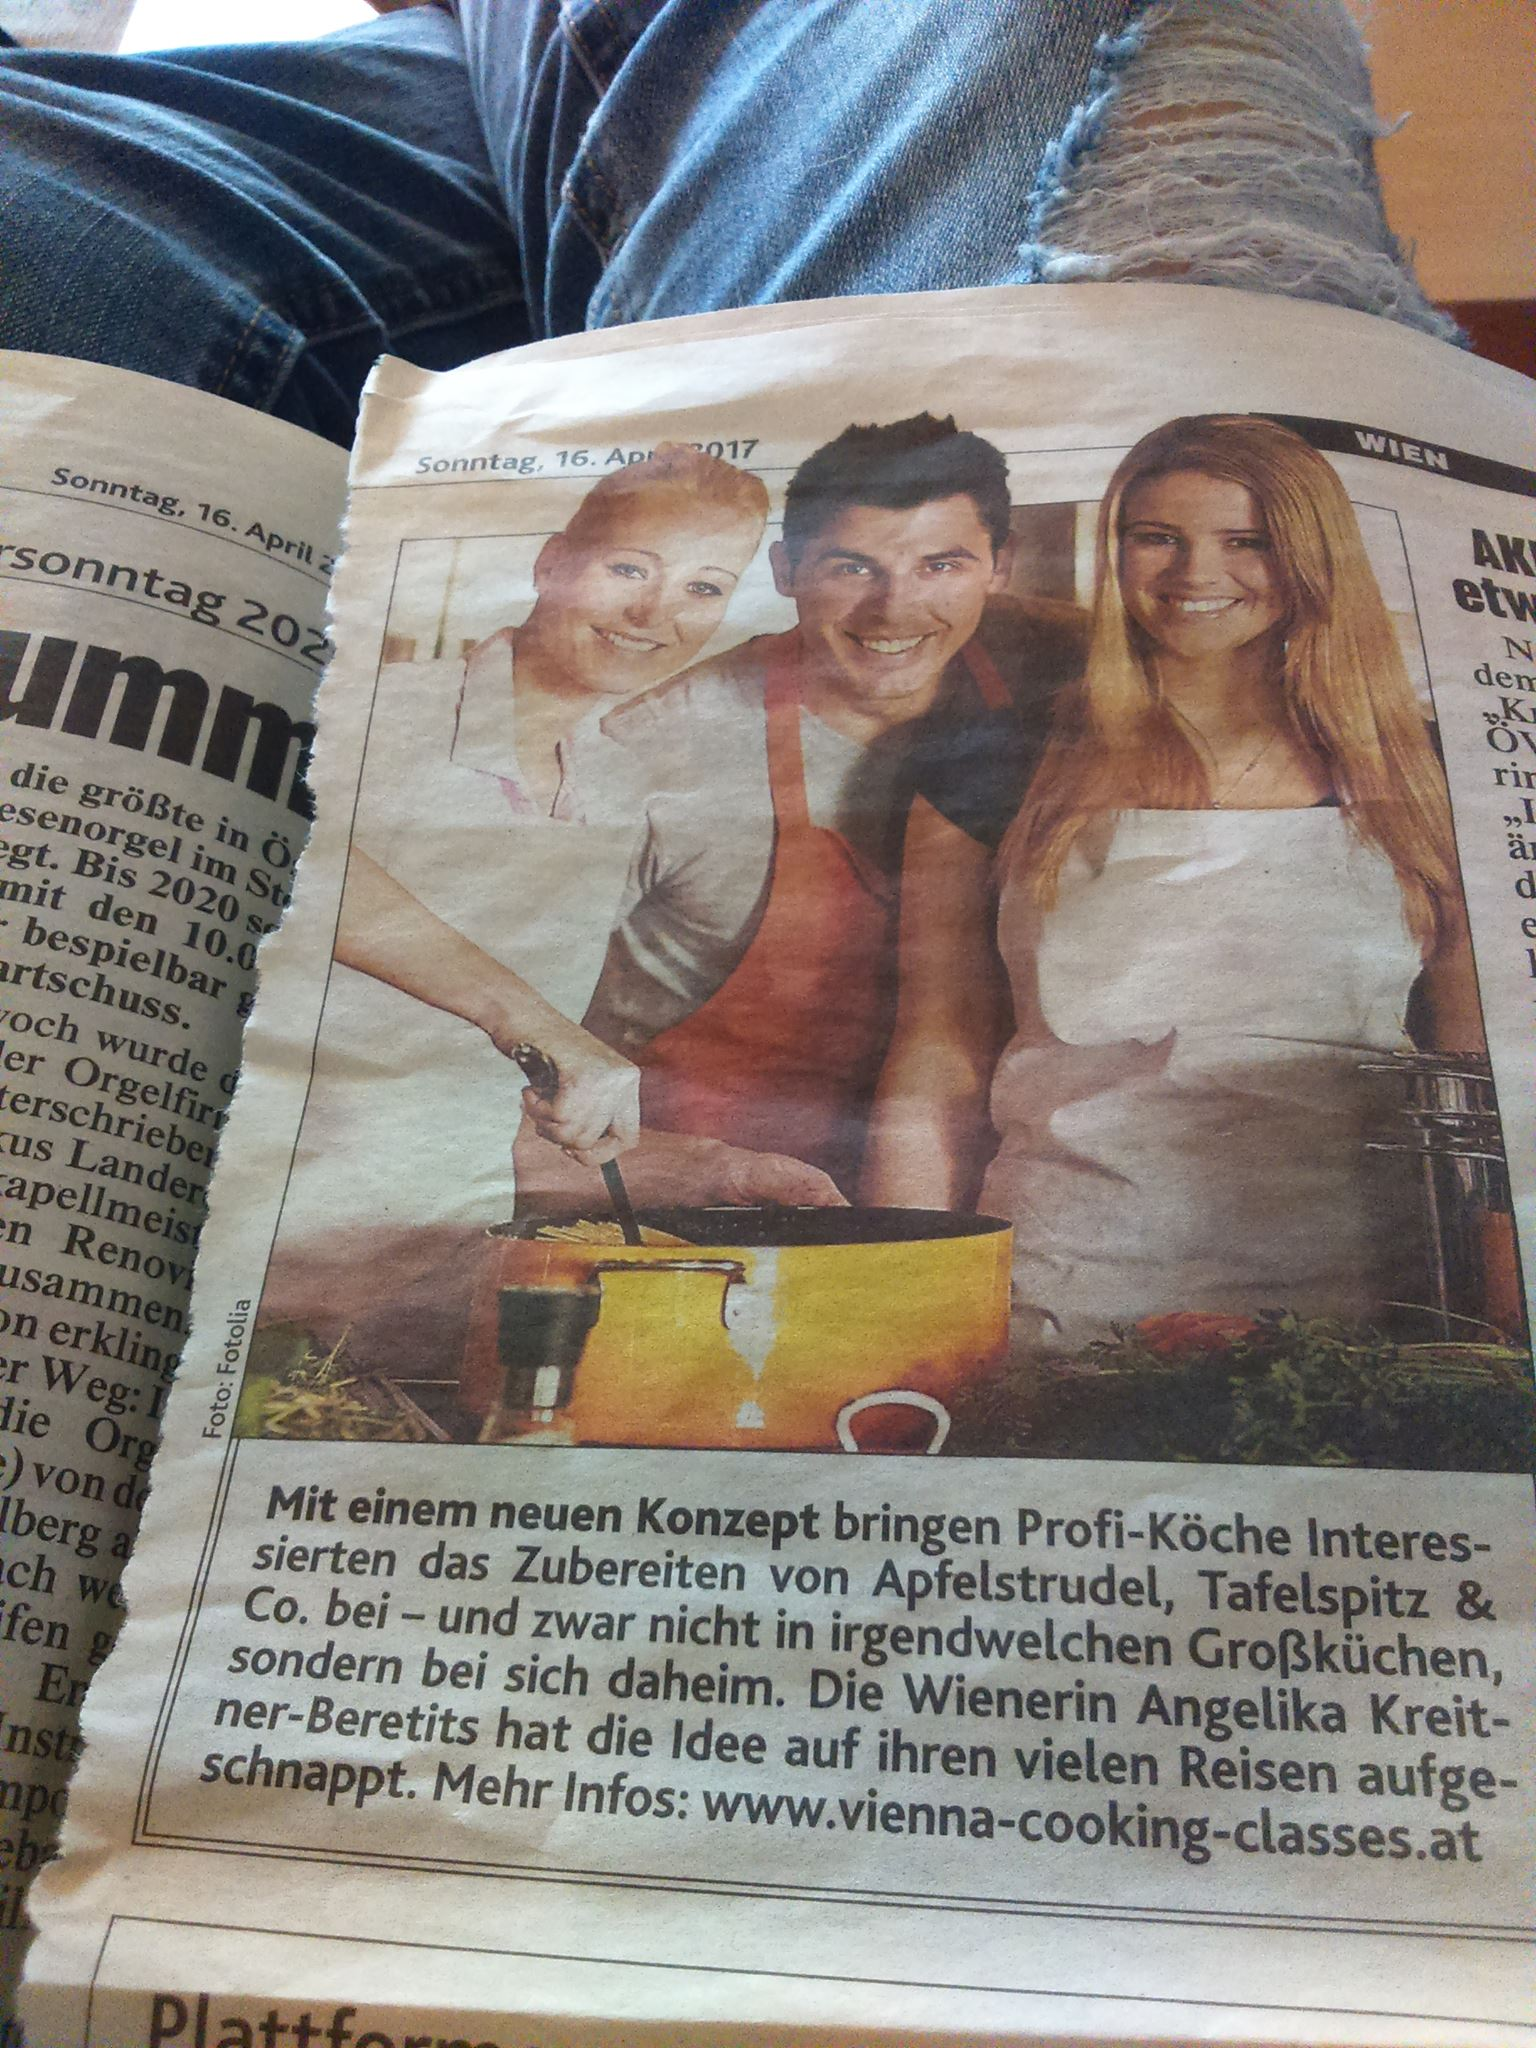 VIENNA COOKING CLASSES IN AUSTRIAS LARGEST NEWS PAPER!